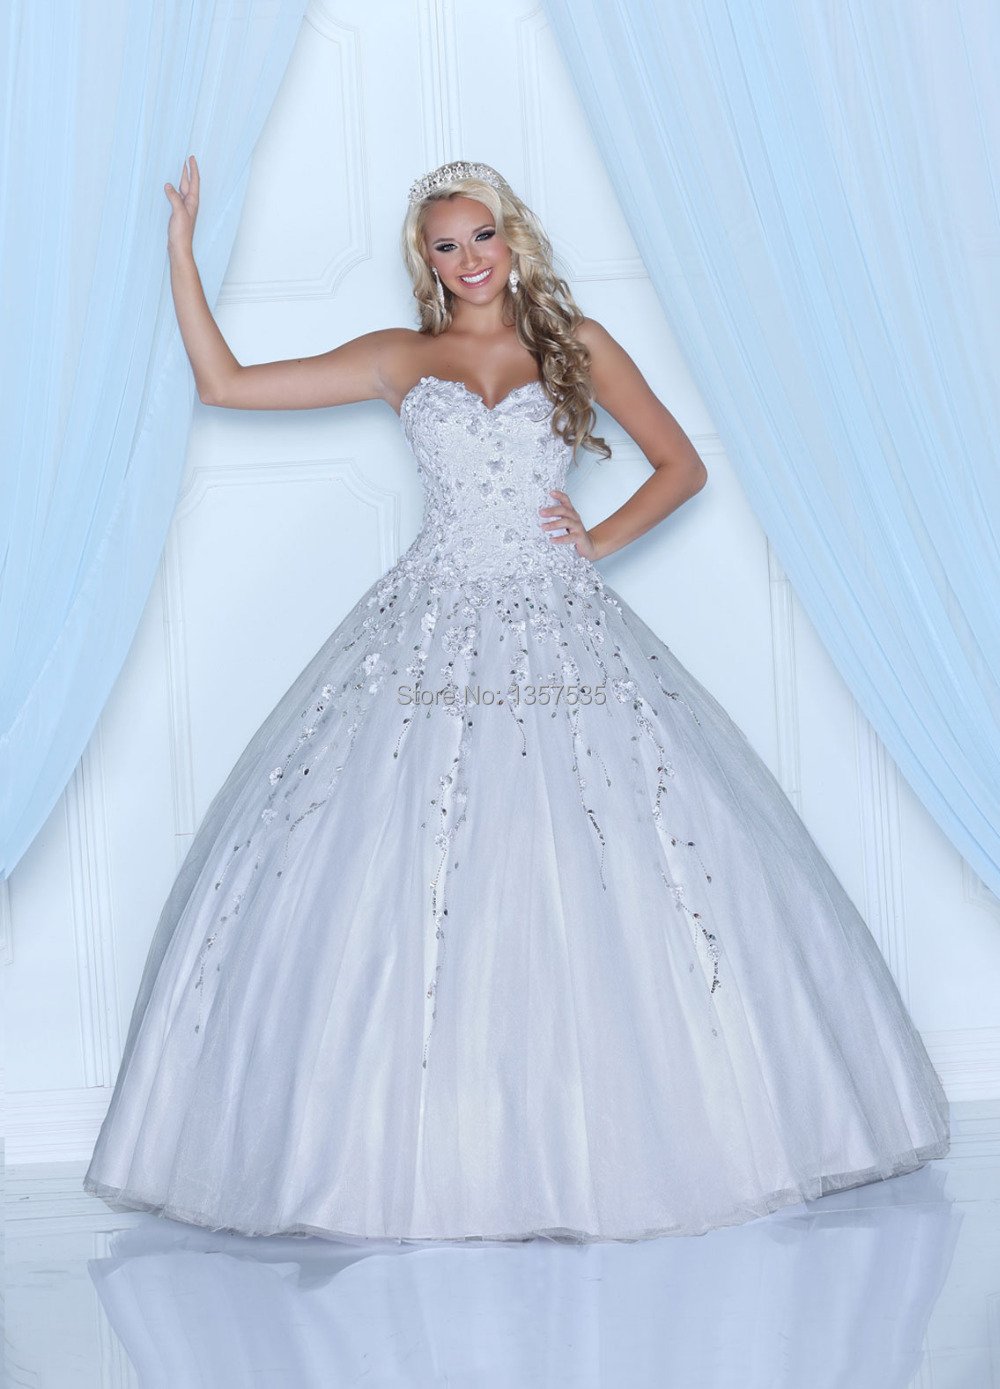 New Fashion 2014 White Quinceanera Dresses Ball Gown Beading ...